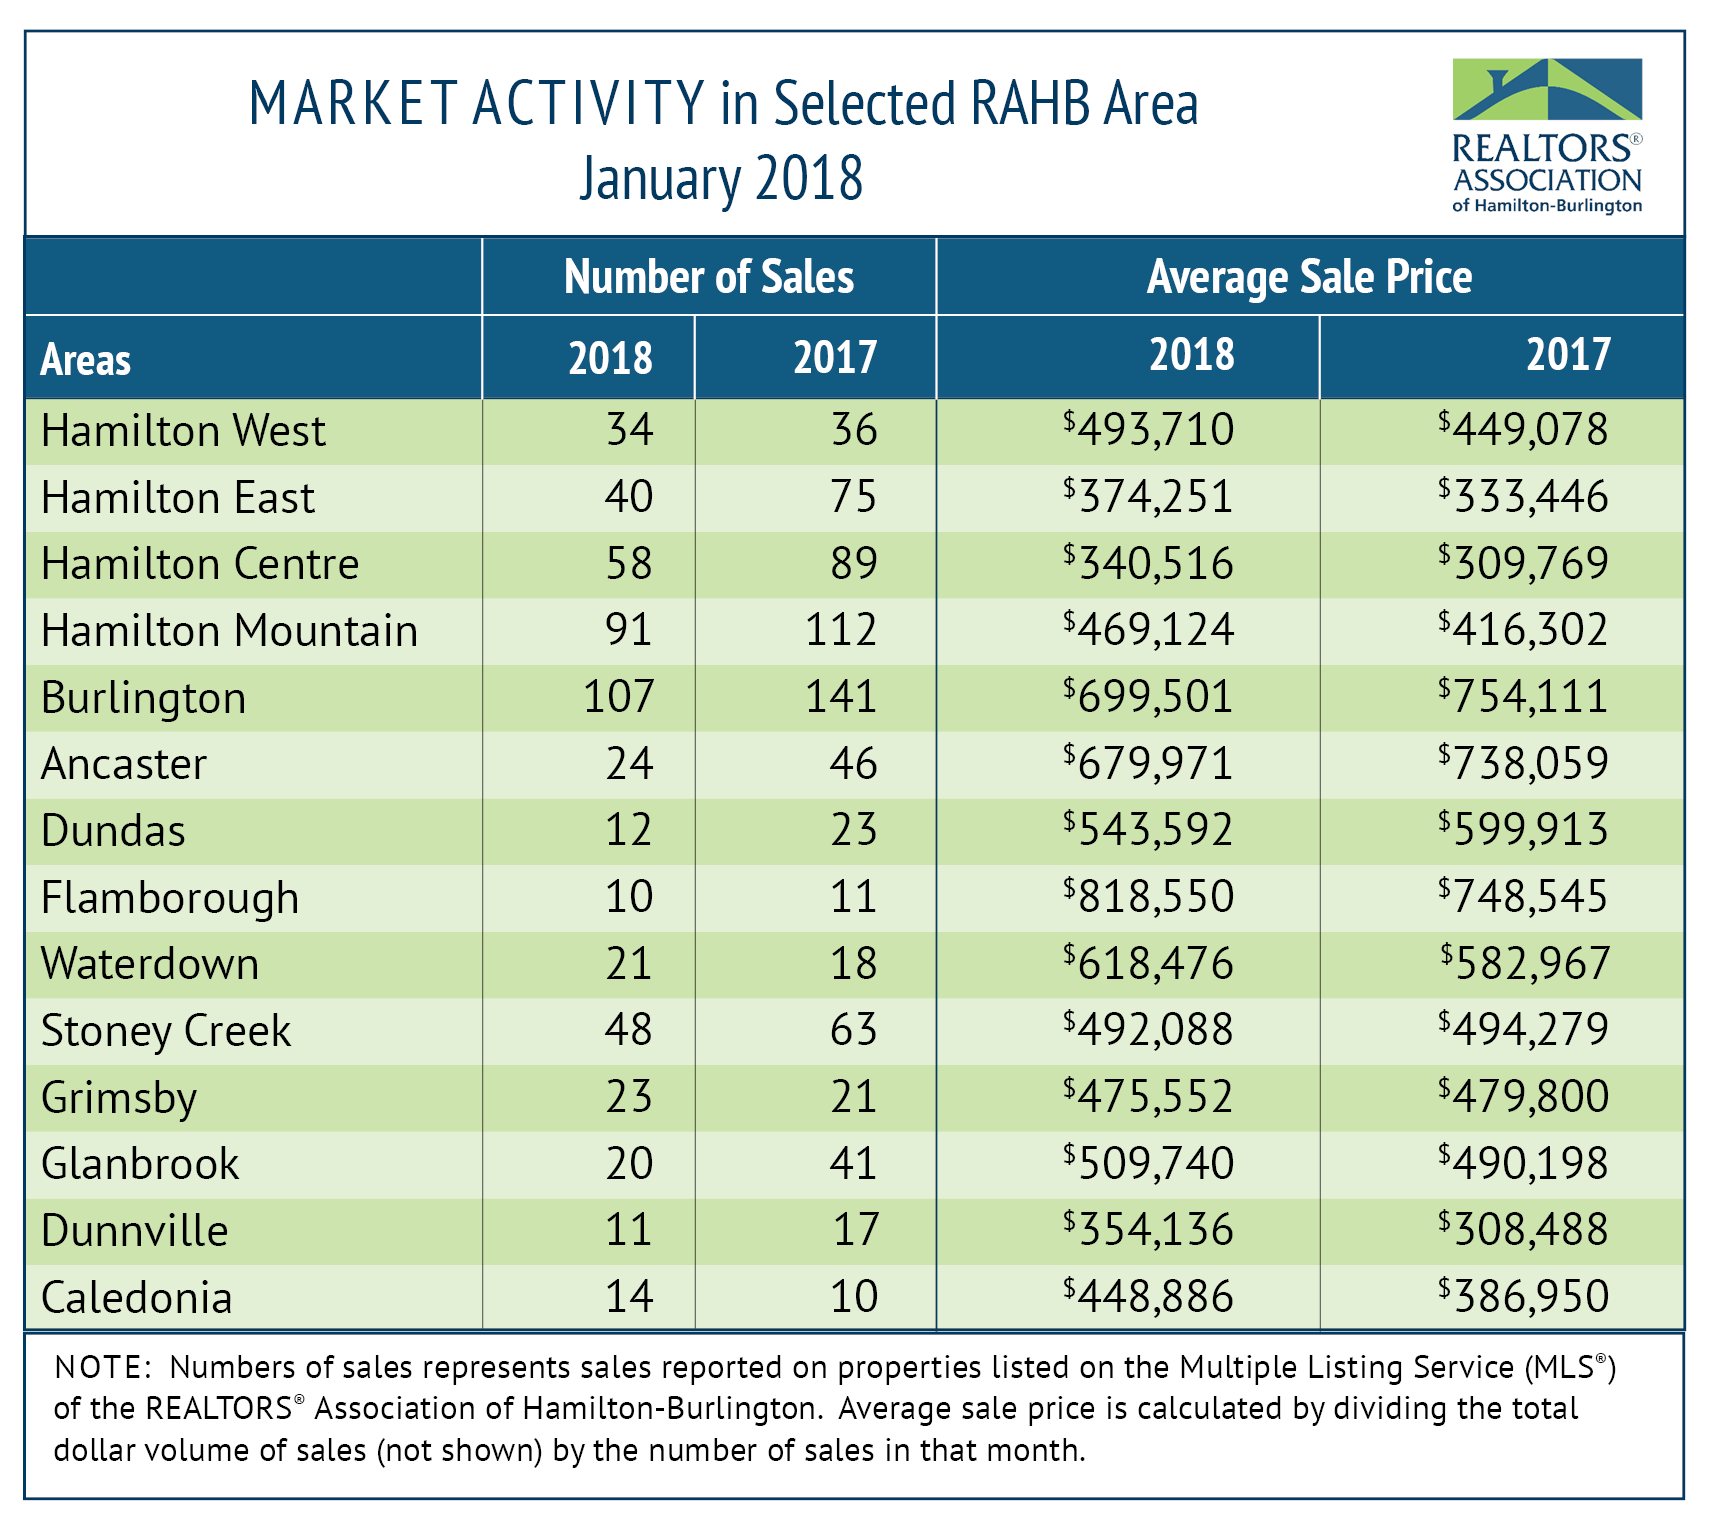 RAHB Market Activity January 2018